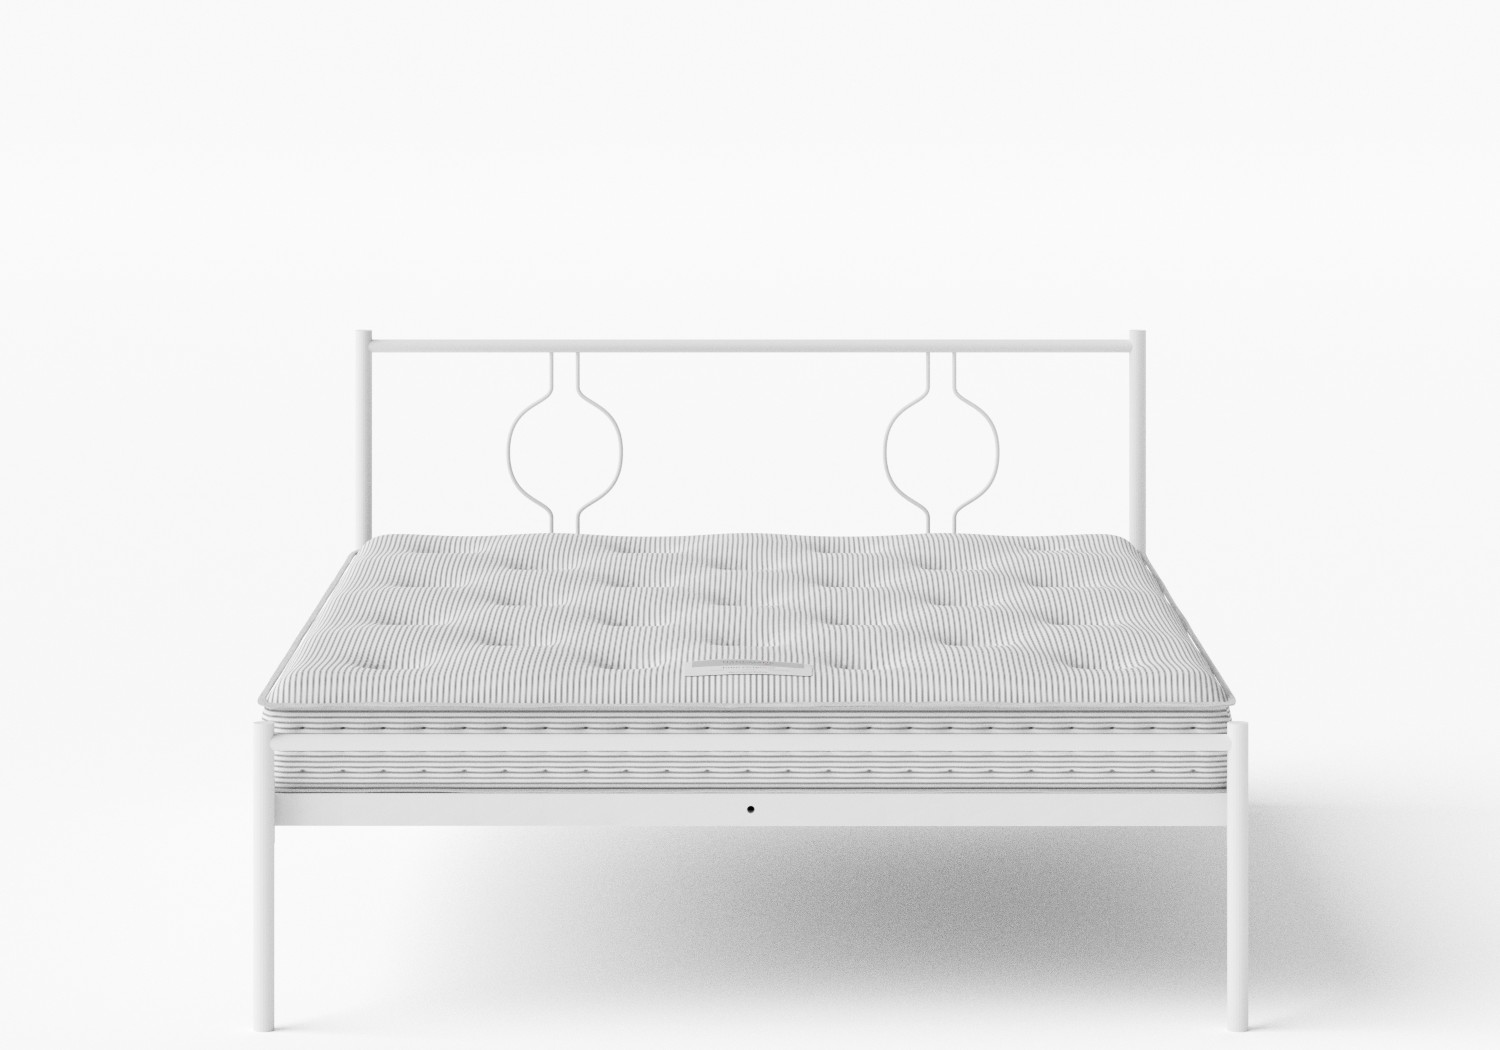 Meiji Iron/Metal Bed in Satin White shown with Juno 1 mattress